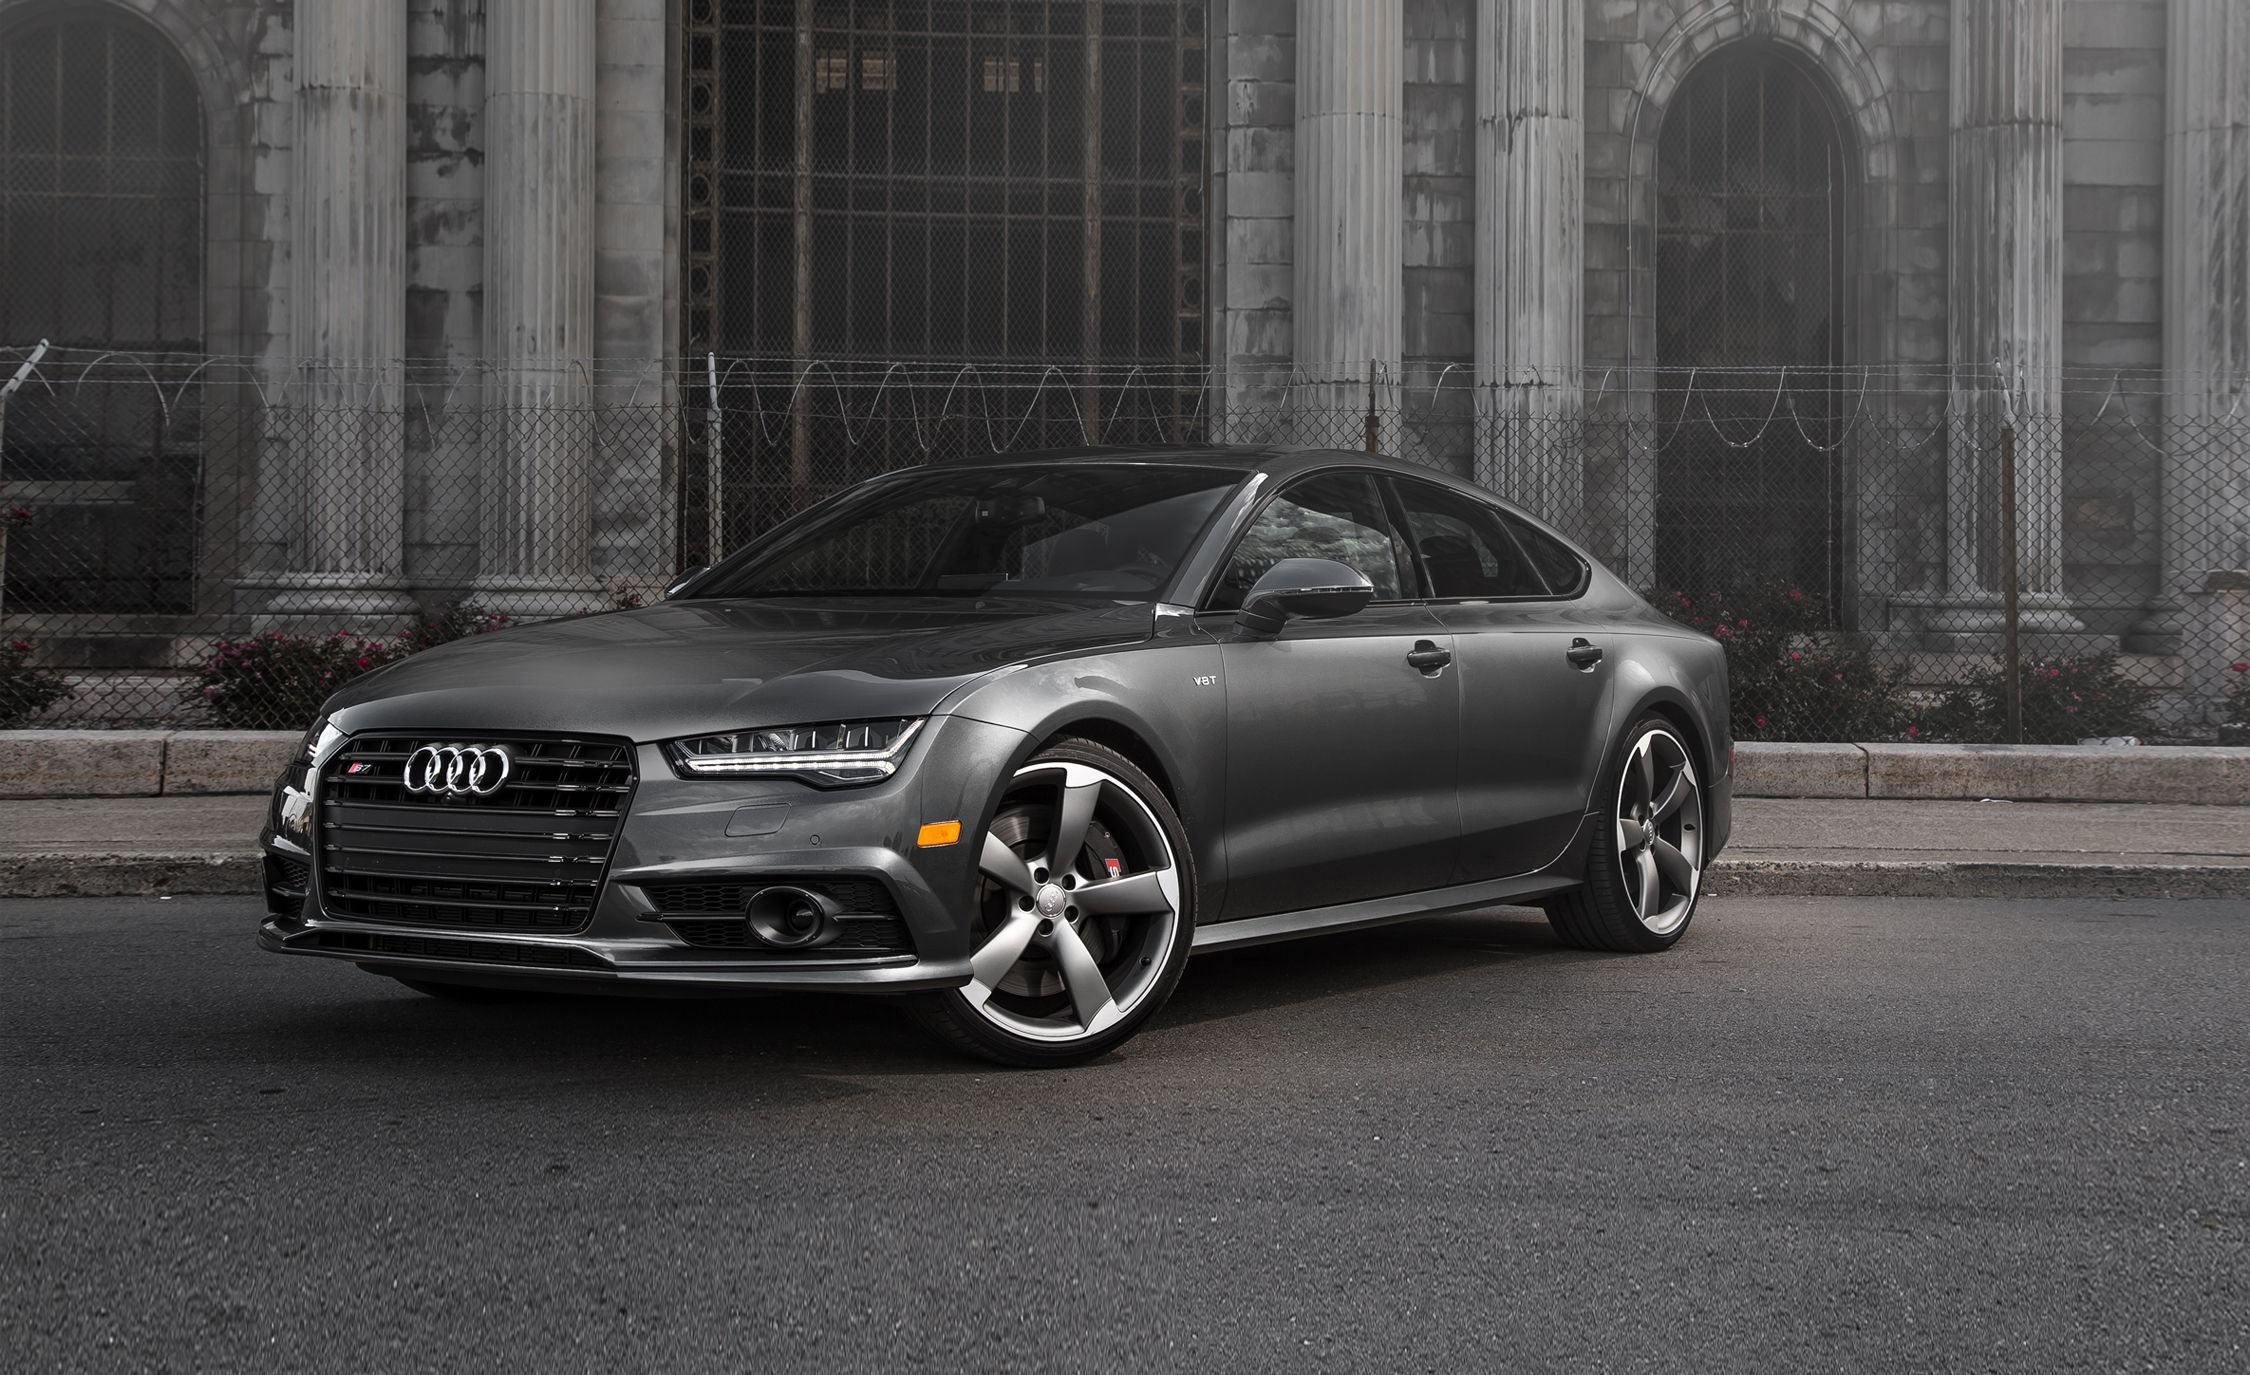 audi s7 reviews audi s7 price photos and specs car and driver. Black Bedroom Furniture Sets. Home Design Ideas